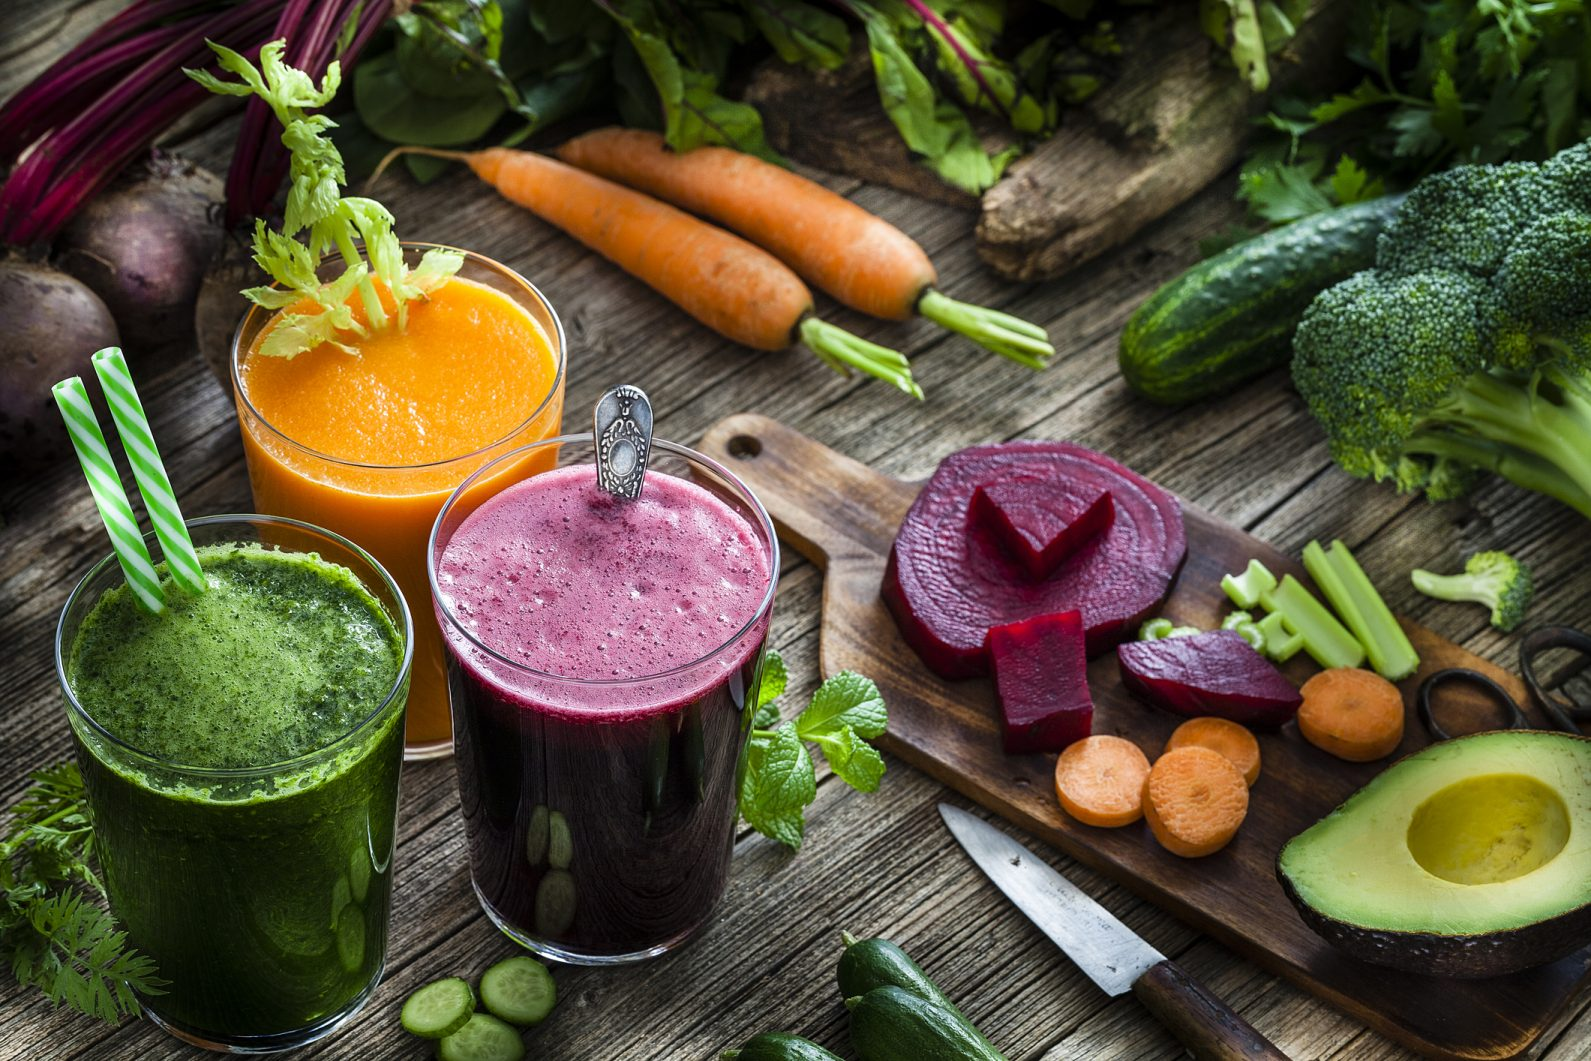 Top 10 Smoothie Recipes on the 21-Day Cleanse